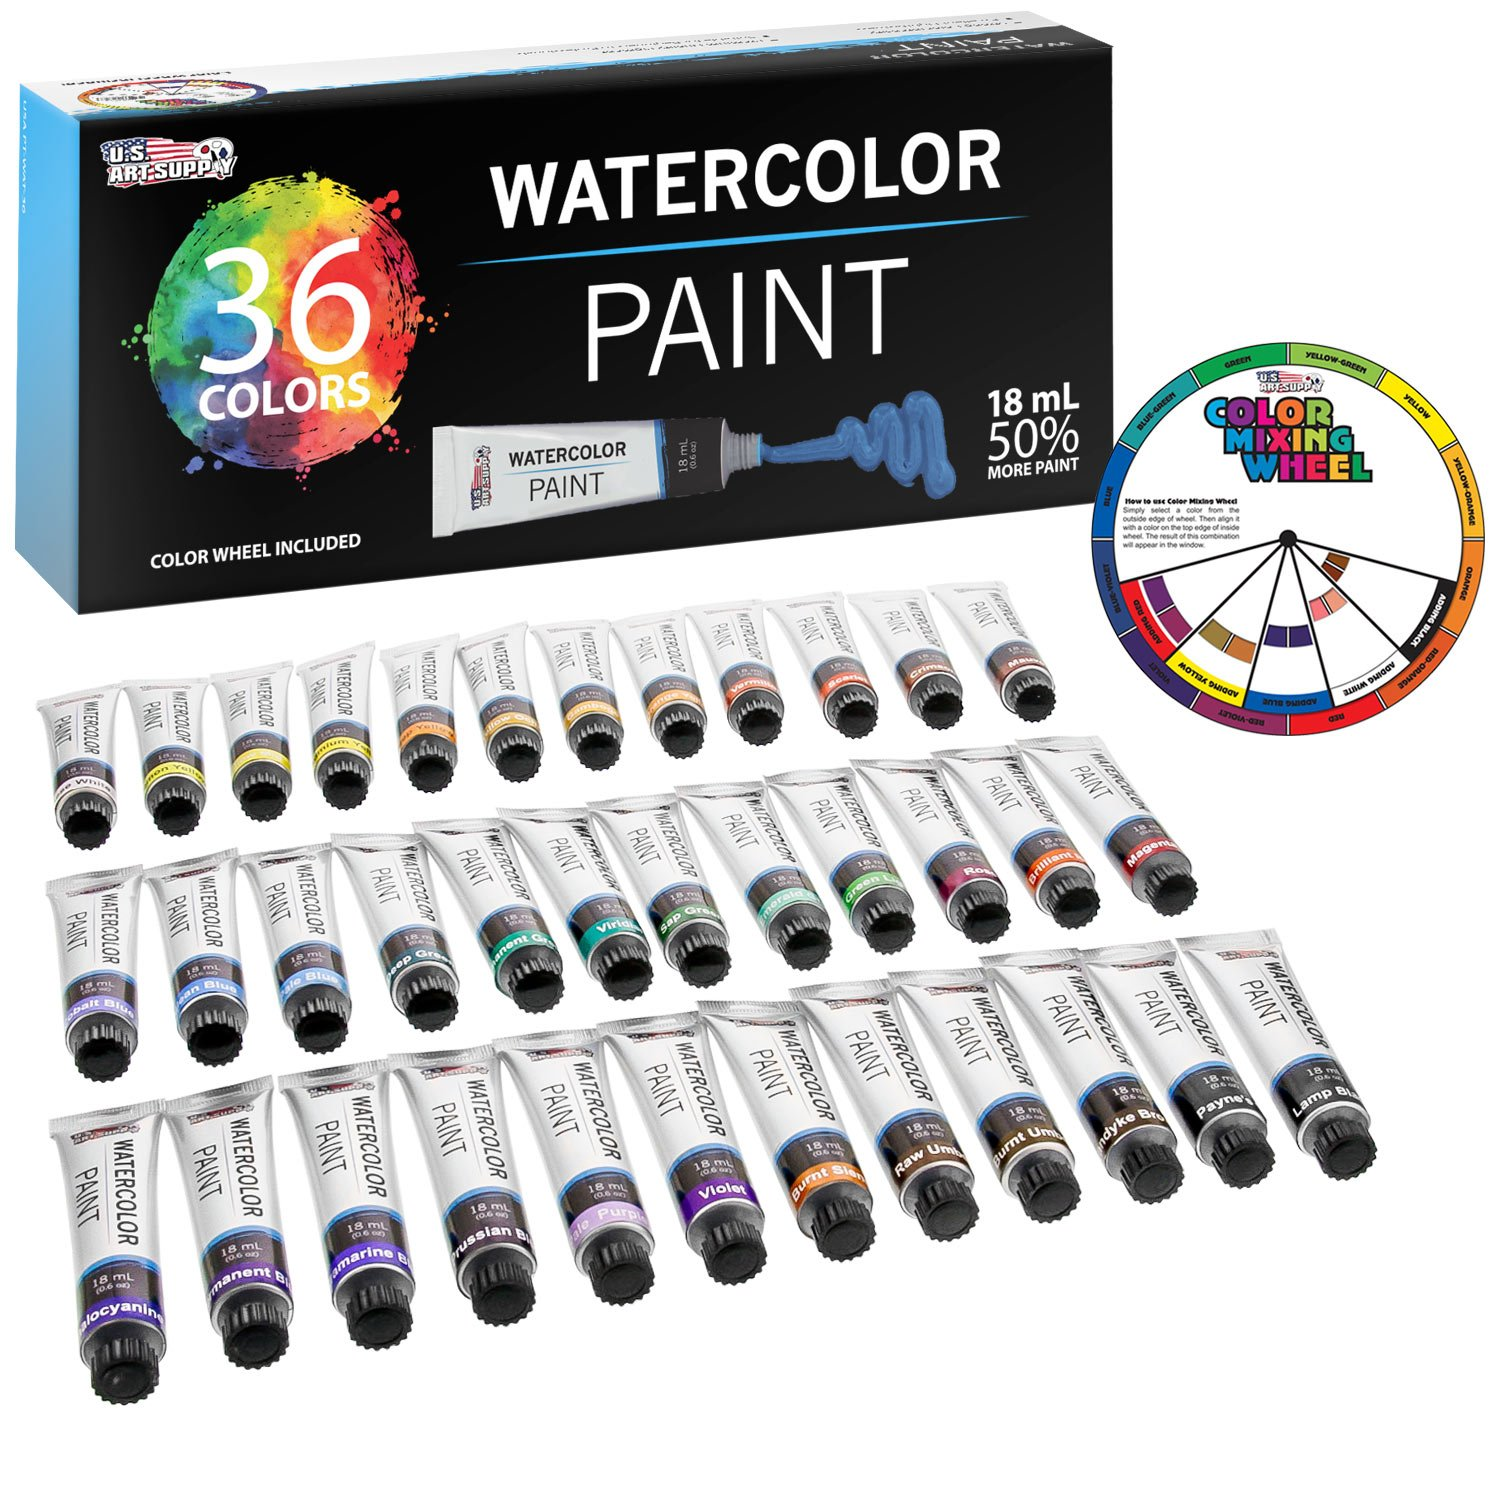 U.S. Art Supply Professional 36 Color Set of Watercolor Paint in Large 18ml Tubes - Vivid Colors Kit for Artists, Students, Beginners - Canvas Portrait Paintings - Bonus Color Mixing Wheel